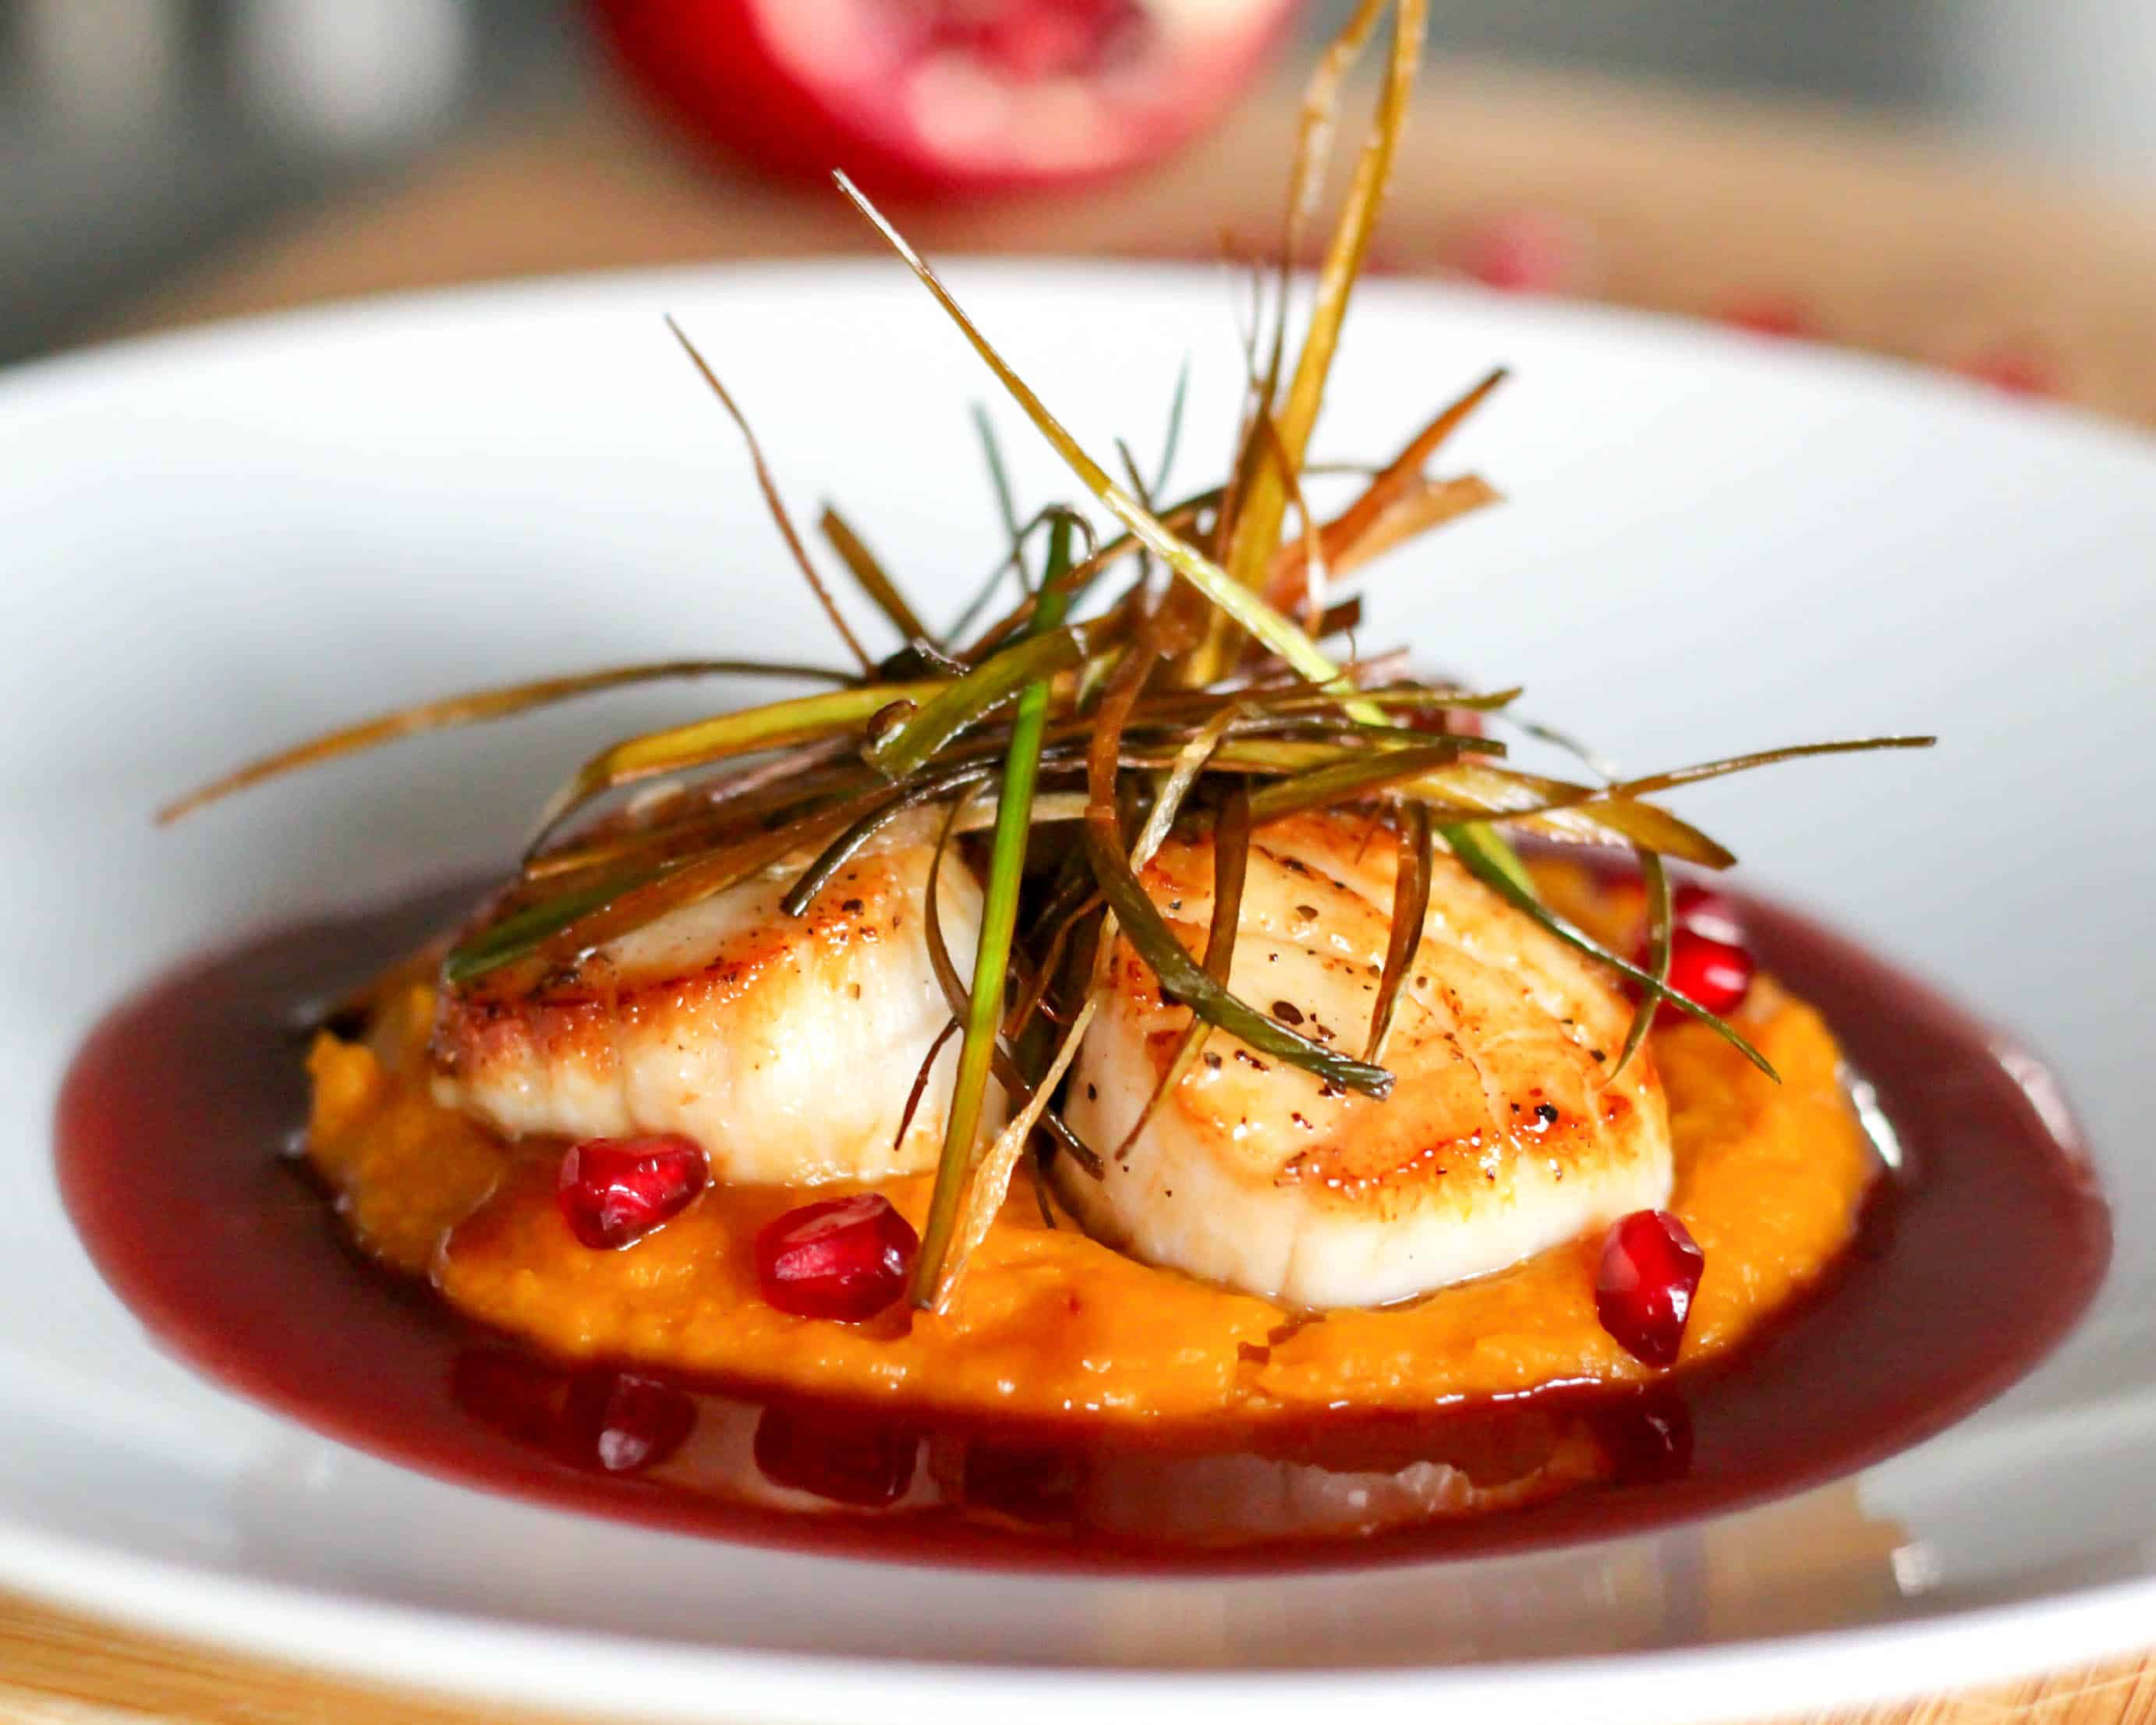 scallops with pomegranate beurre blanc - Bur Blanc Recipe